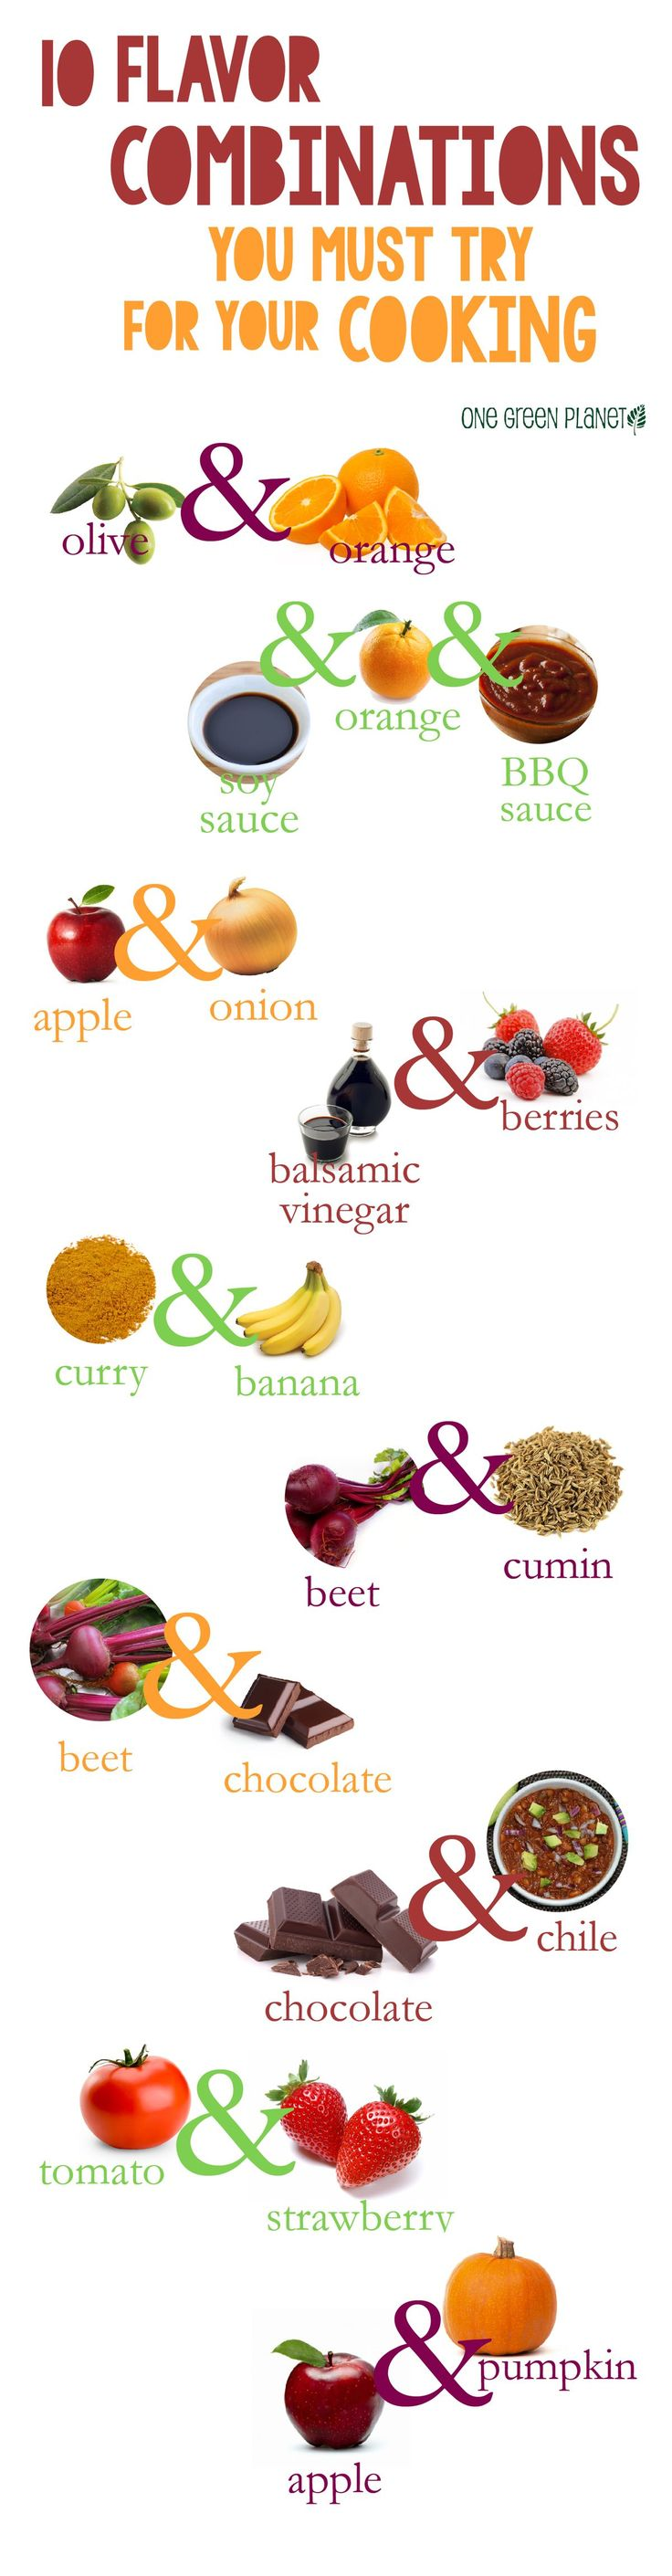 New flavor combinations to try when cooking!